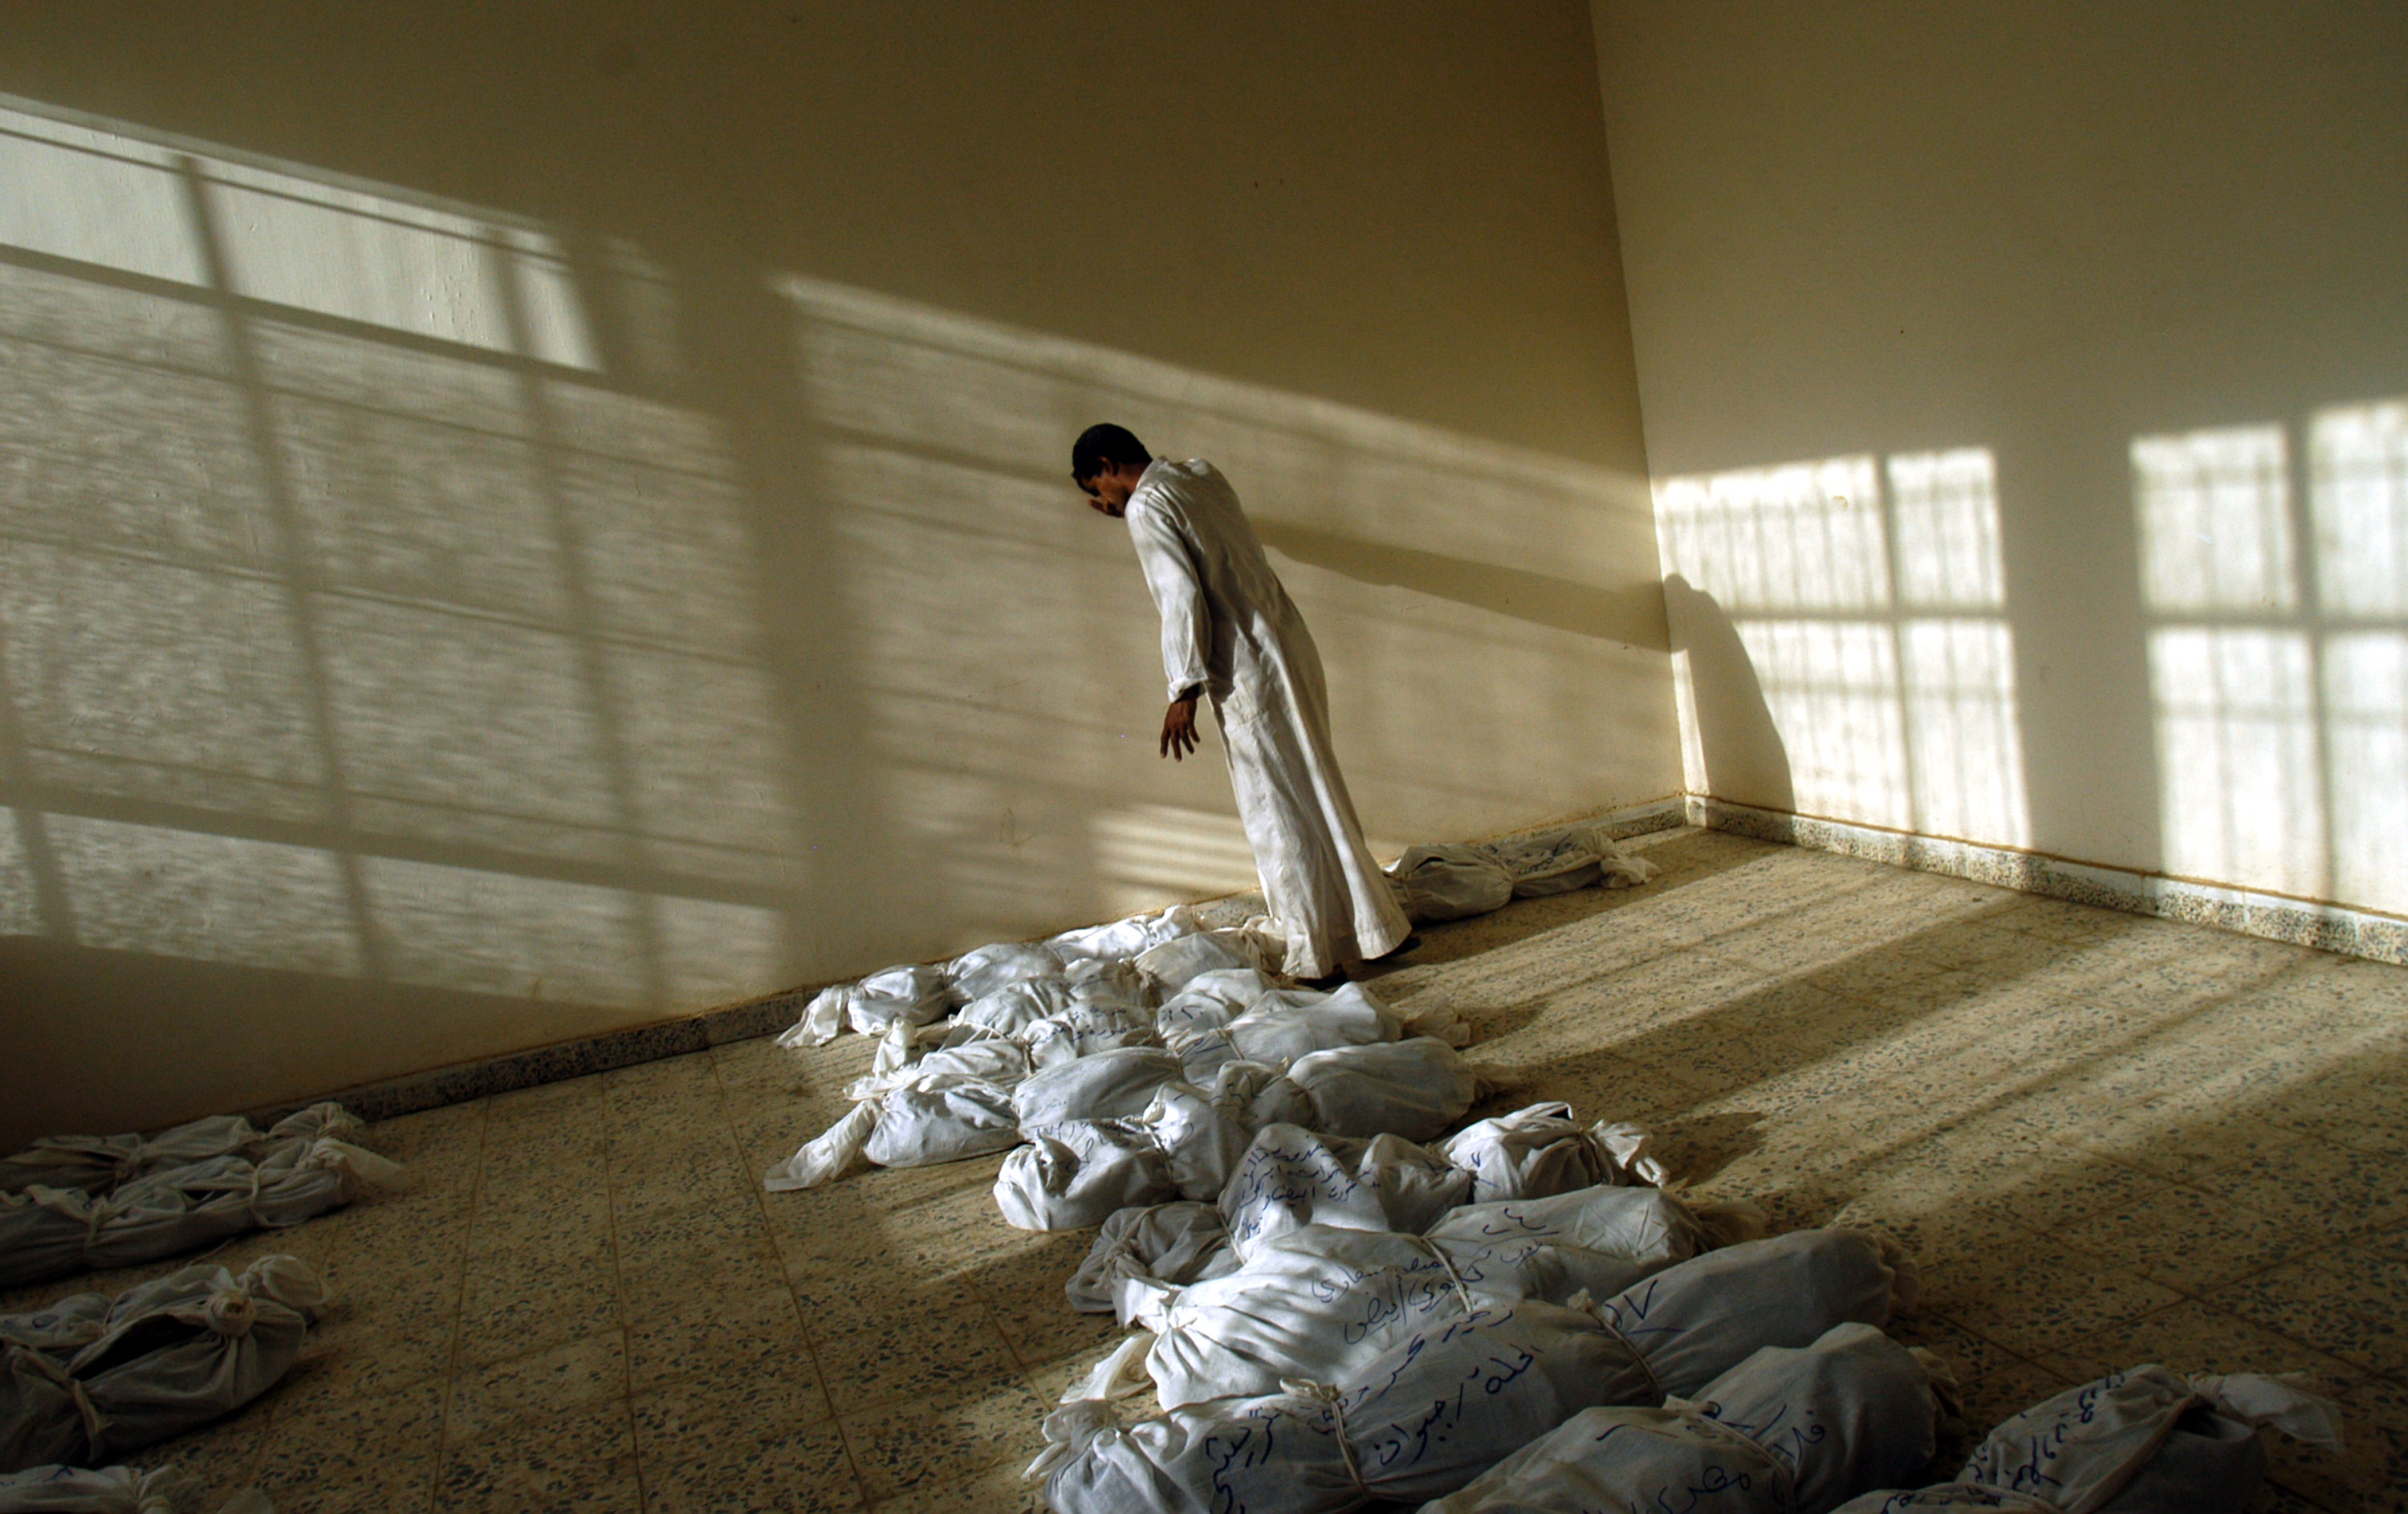 An Iraqi man leans against the wall as he walks along rows of remains of bodies discovered  in a mass grave South of Bagdad, and lied out in a building in Iraq, May 29, 2003.  Since the fall of Saddam Hussain's regime in Iraq, thousands of bodies have been pulled from mass grave sites around the country, evidence of the brutal, bloody regime of the former dictator.